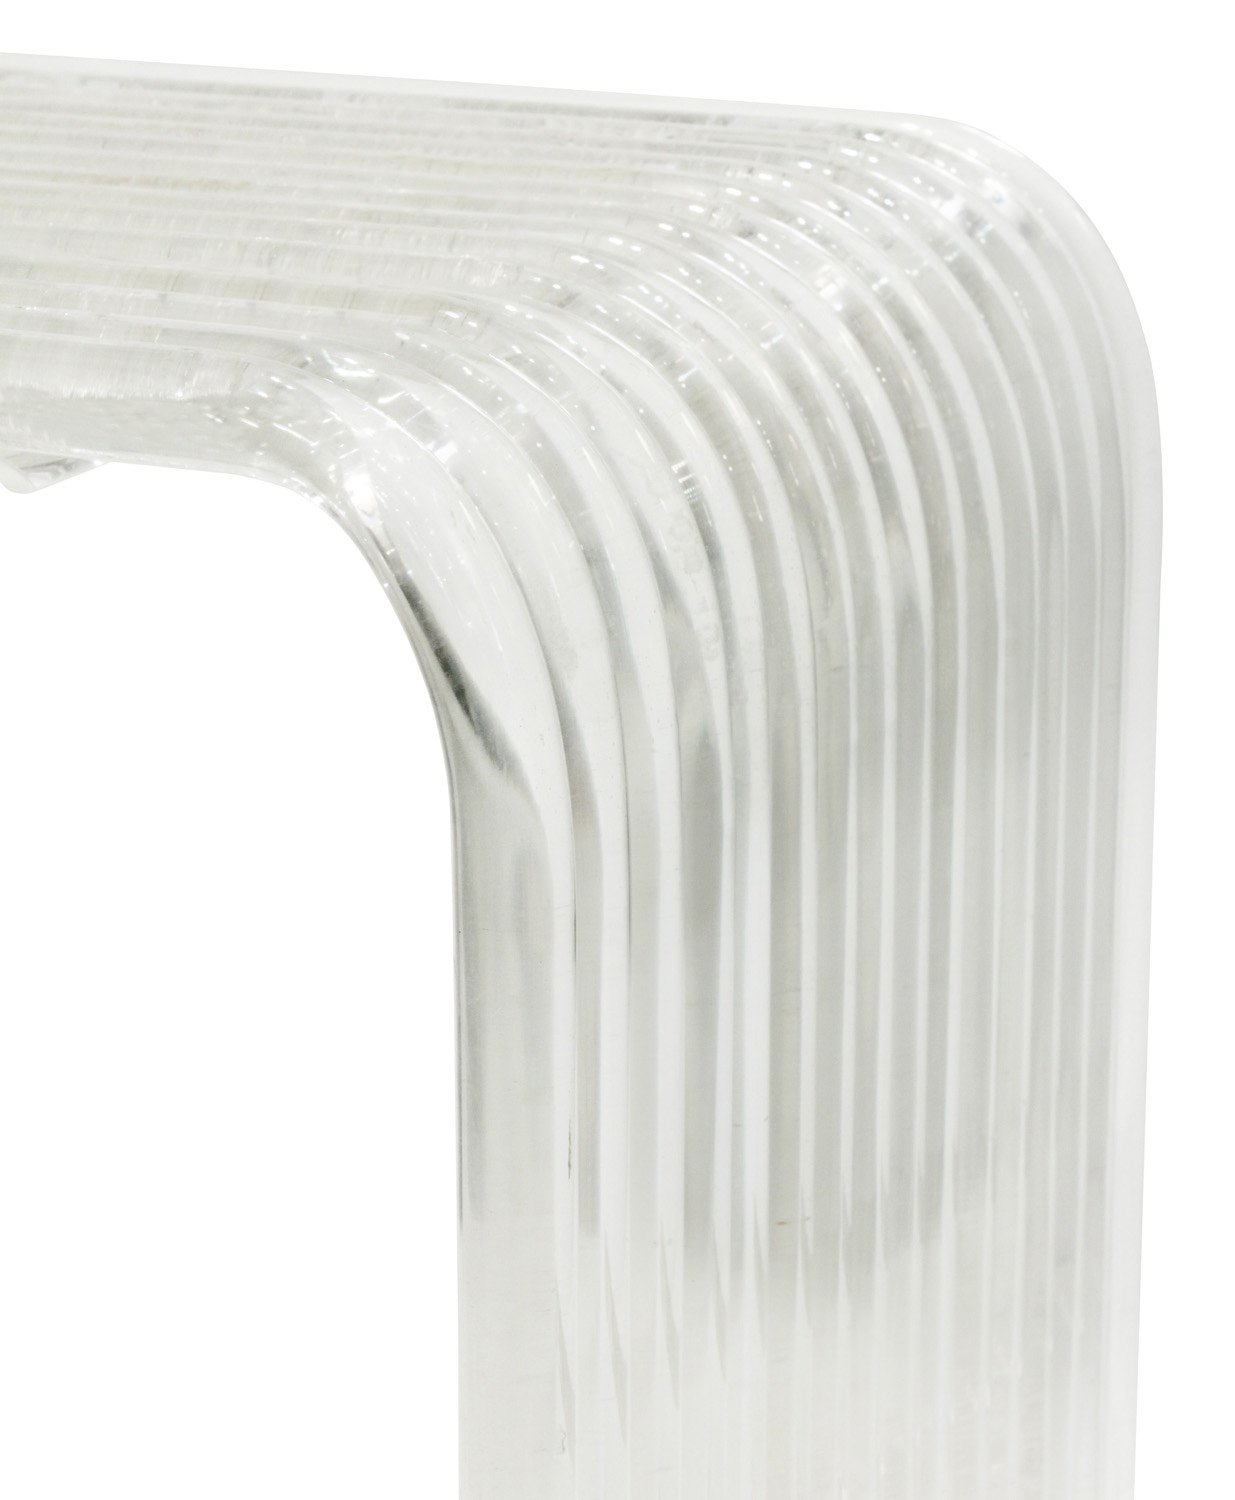 70s 35 lucite waterfall rods endtable142 detail3 hires.jpg